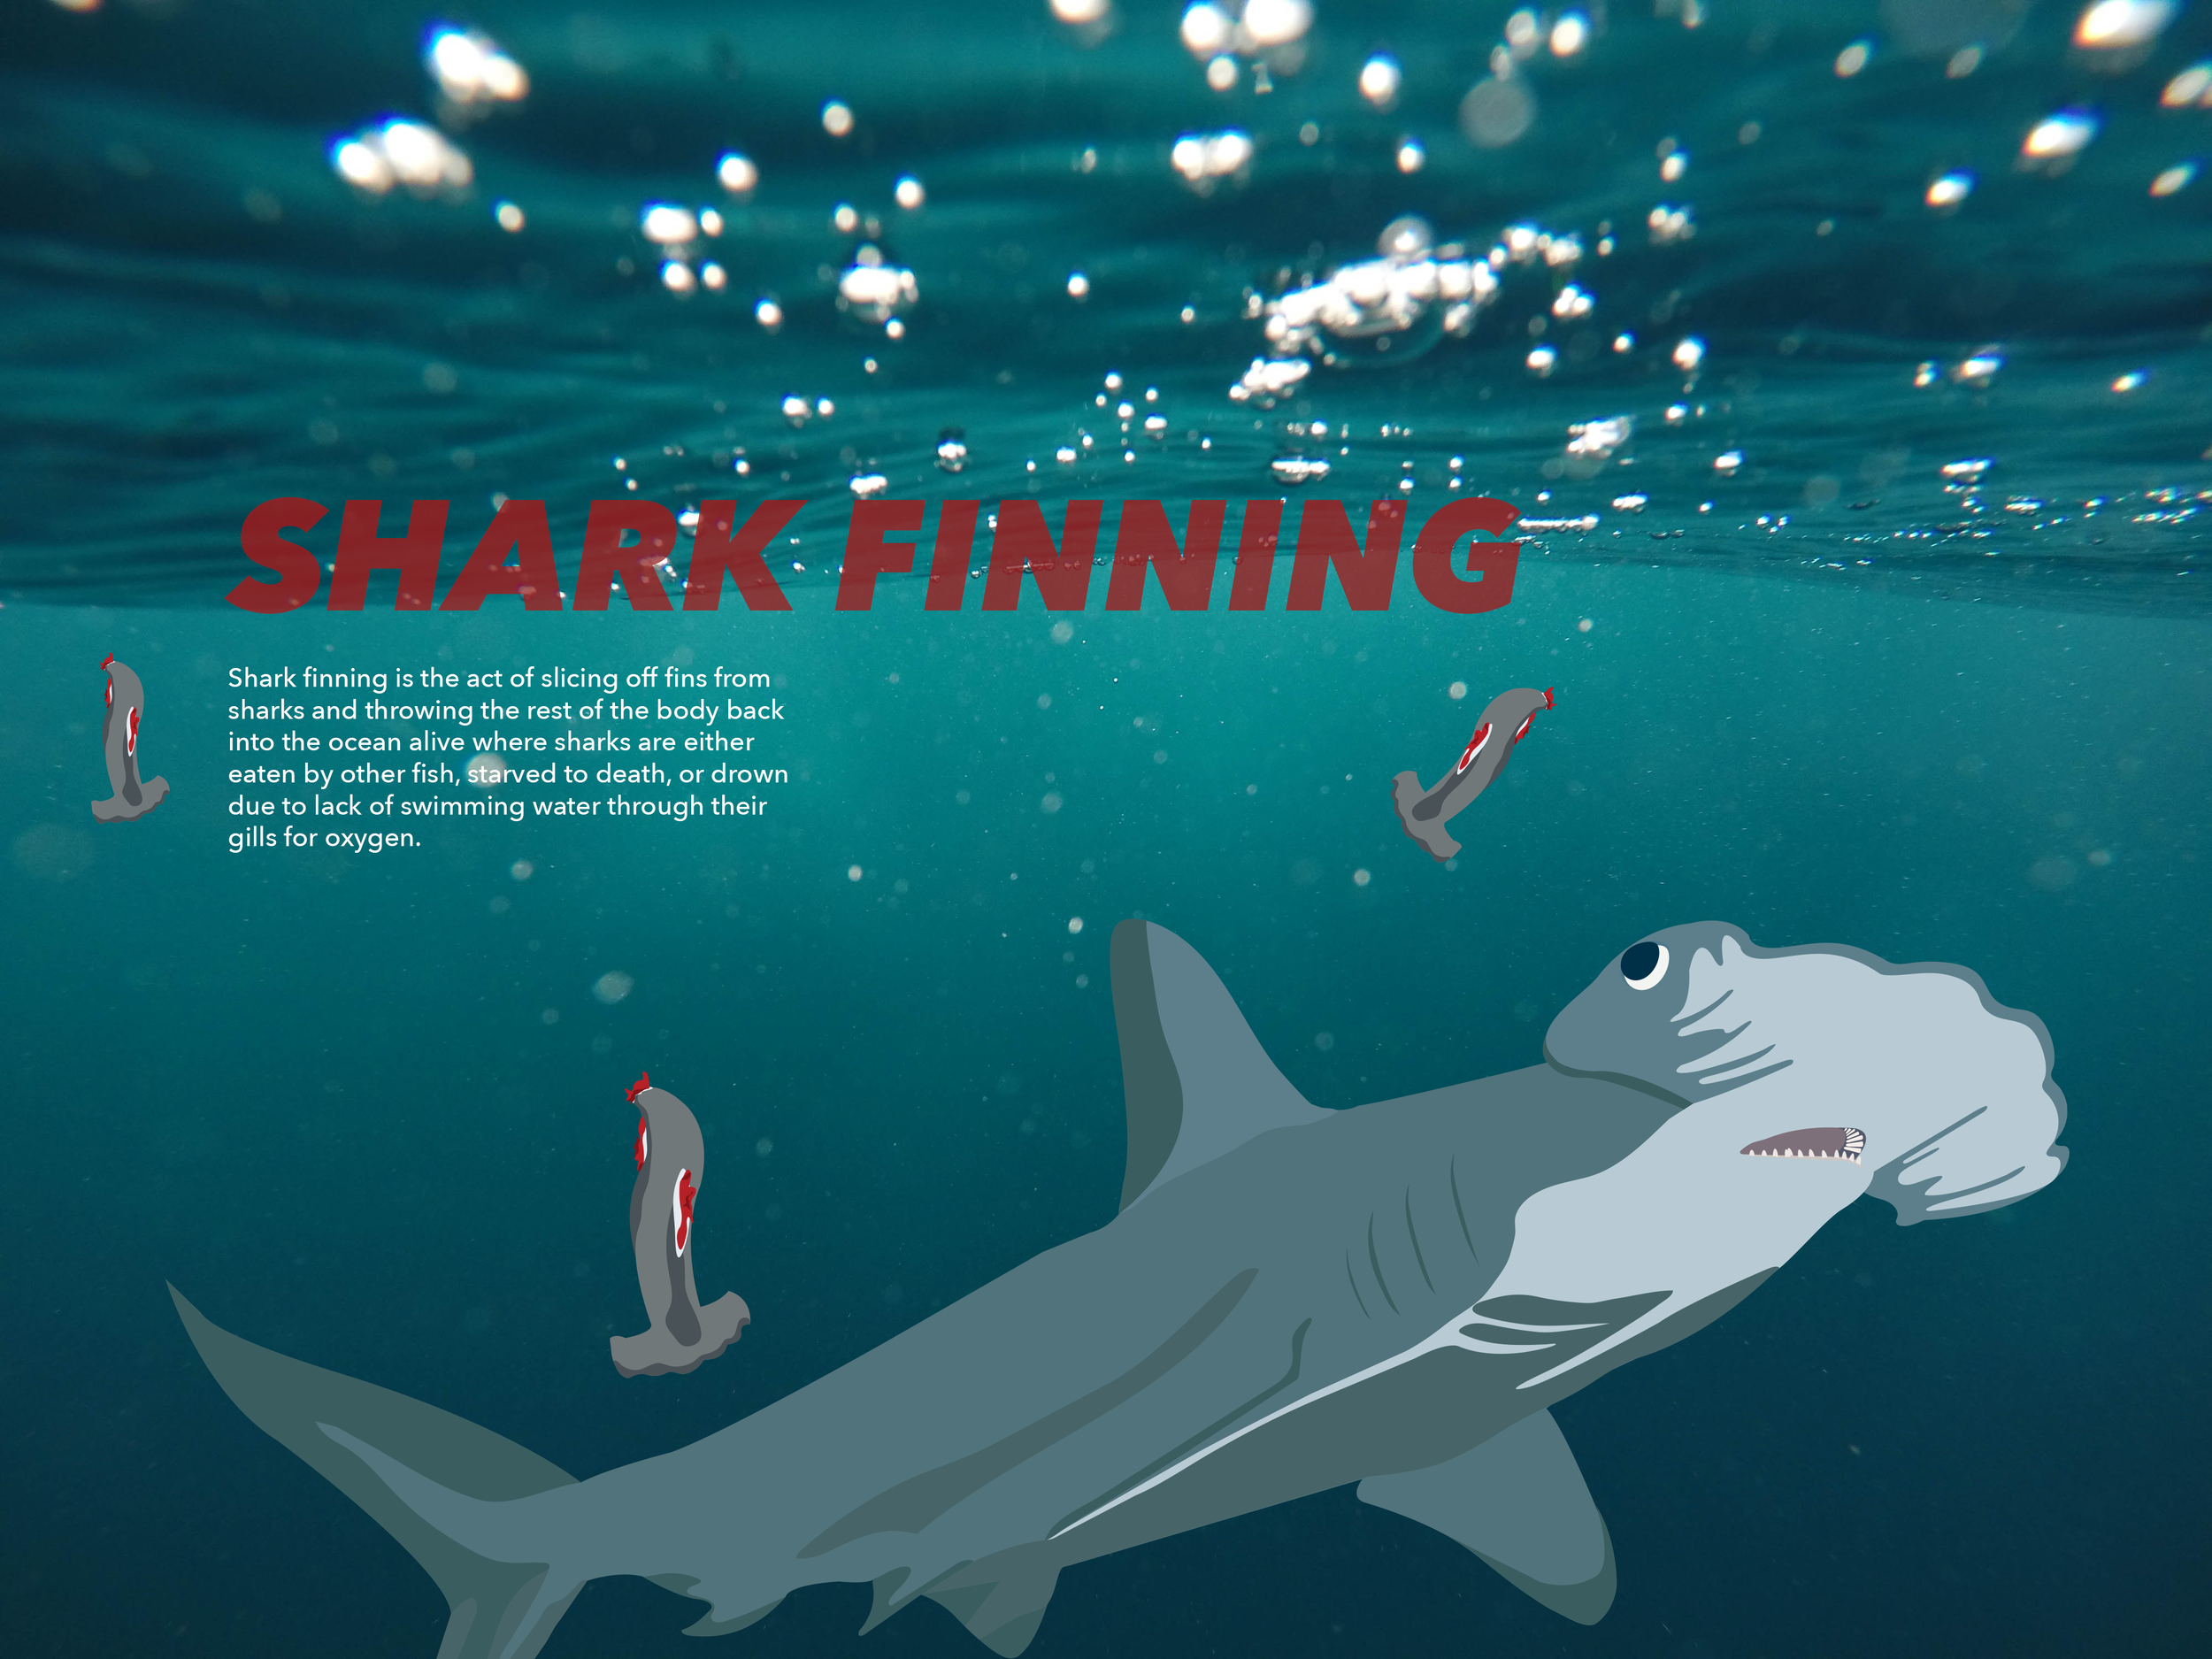 This poster presents a timeline of laws that have been passed to construct ocean and shark protection.